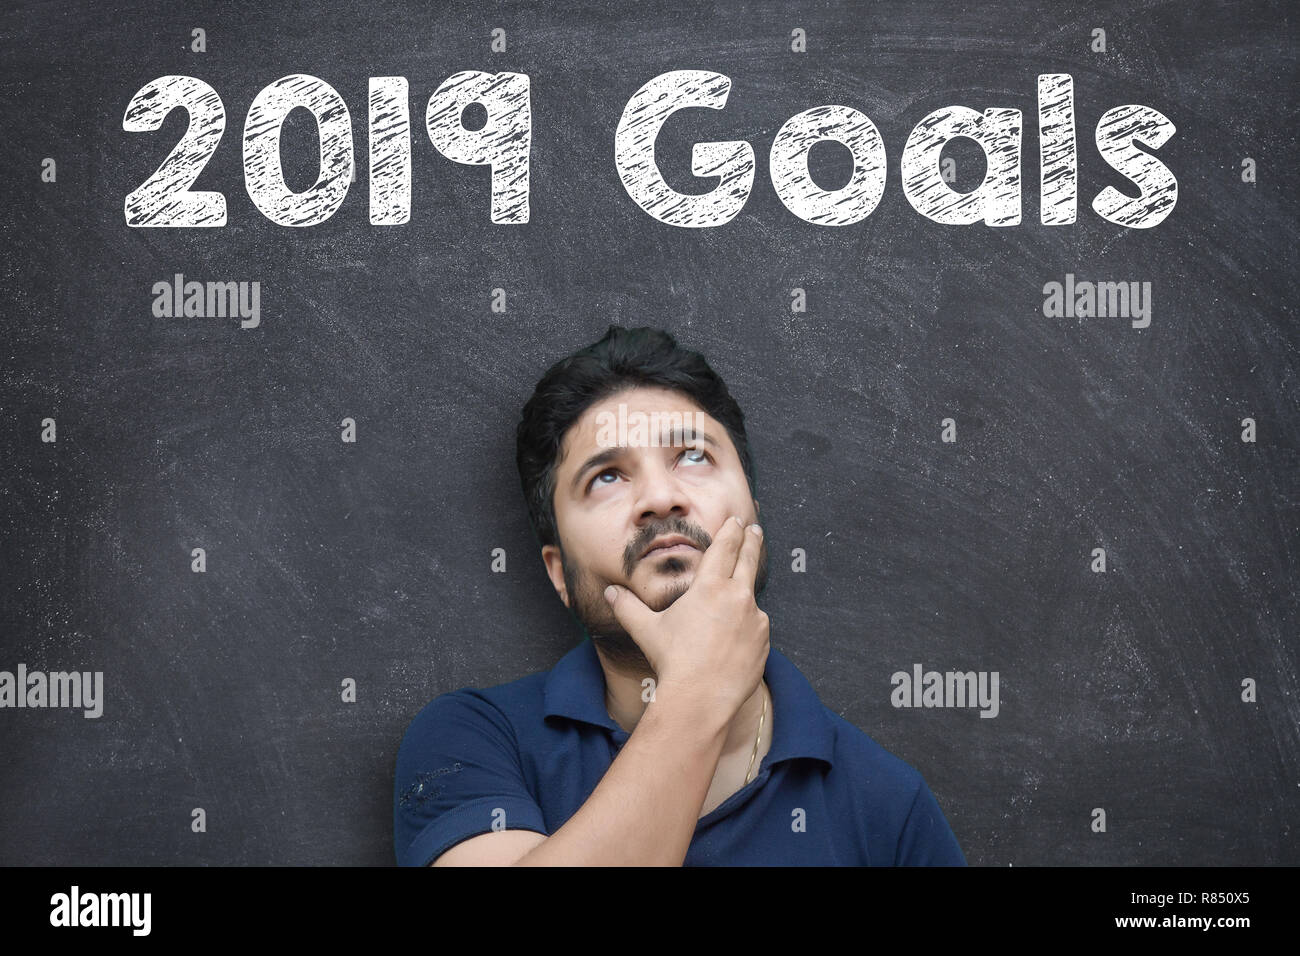 Thinking Position of A Young Asian Man while standing against blackboard with chalk drawing of new year 2019 goals - Stock Image